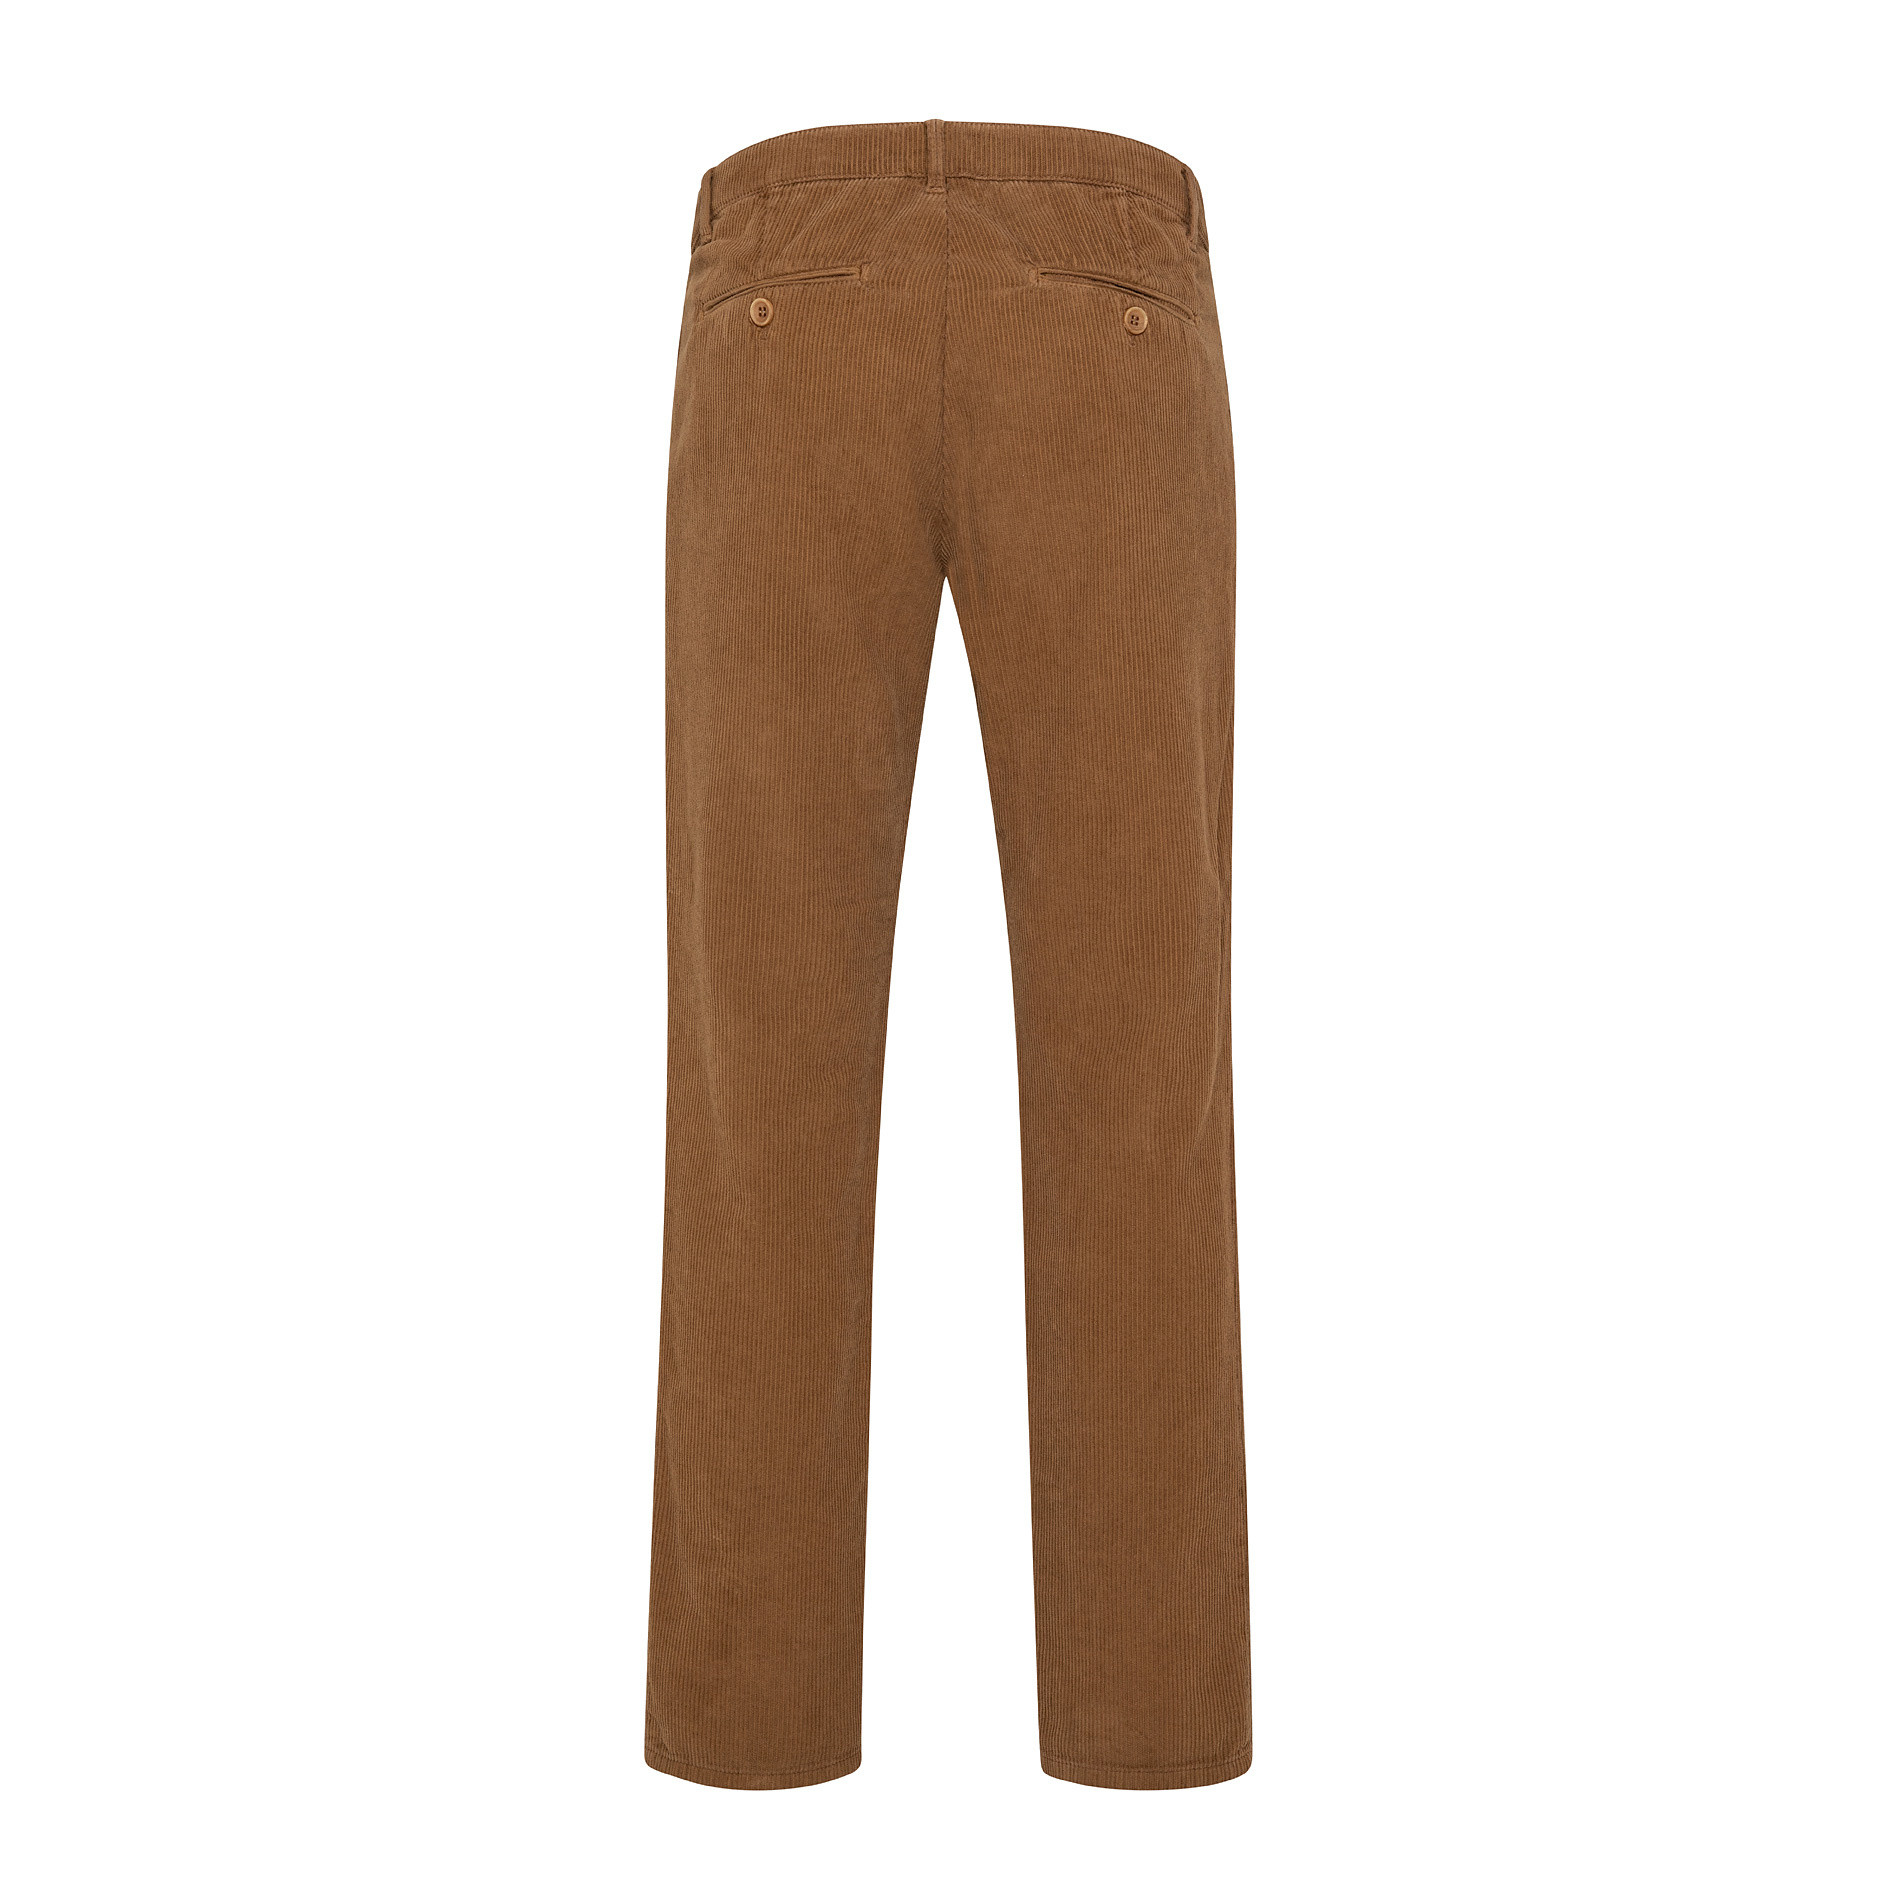 Pantaloni chino velluto stretch, Beige scuro, large image number 1